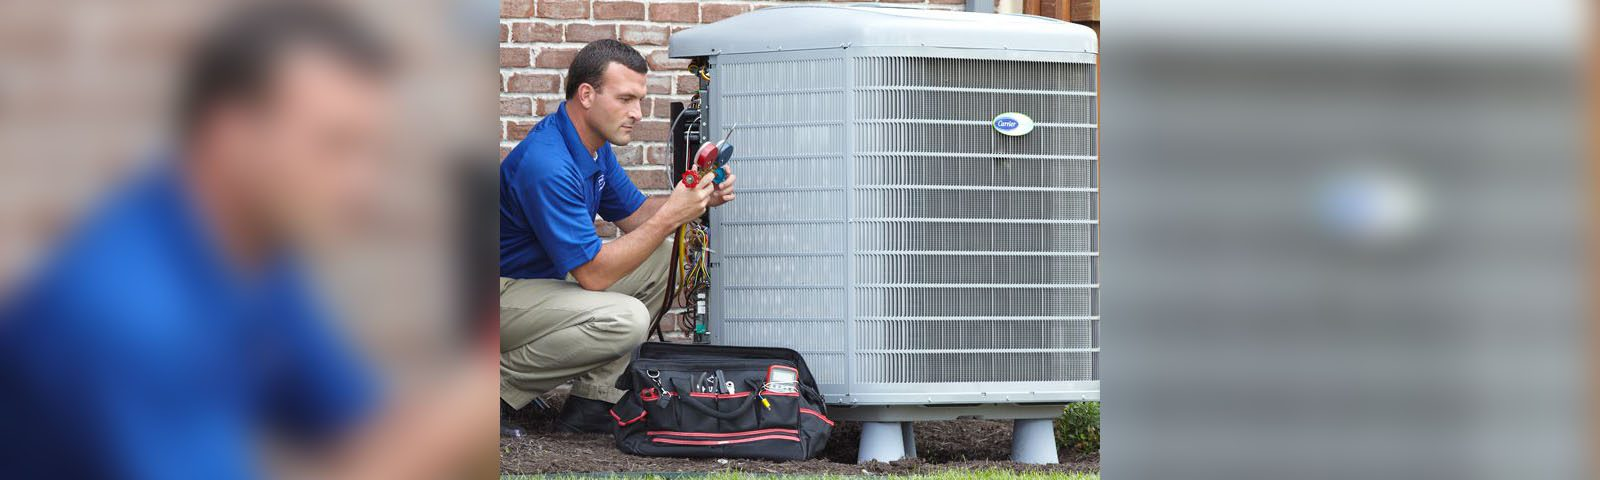 Air Conditioning Service Stockton CA